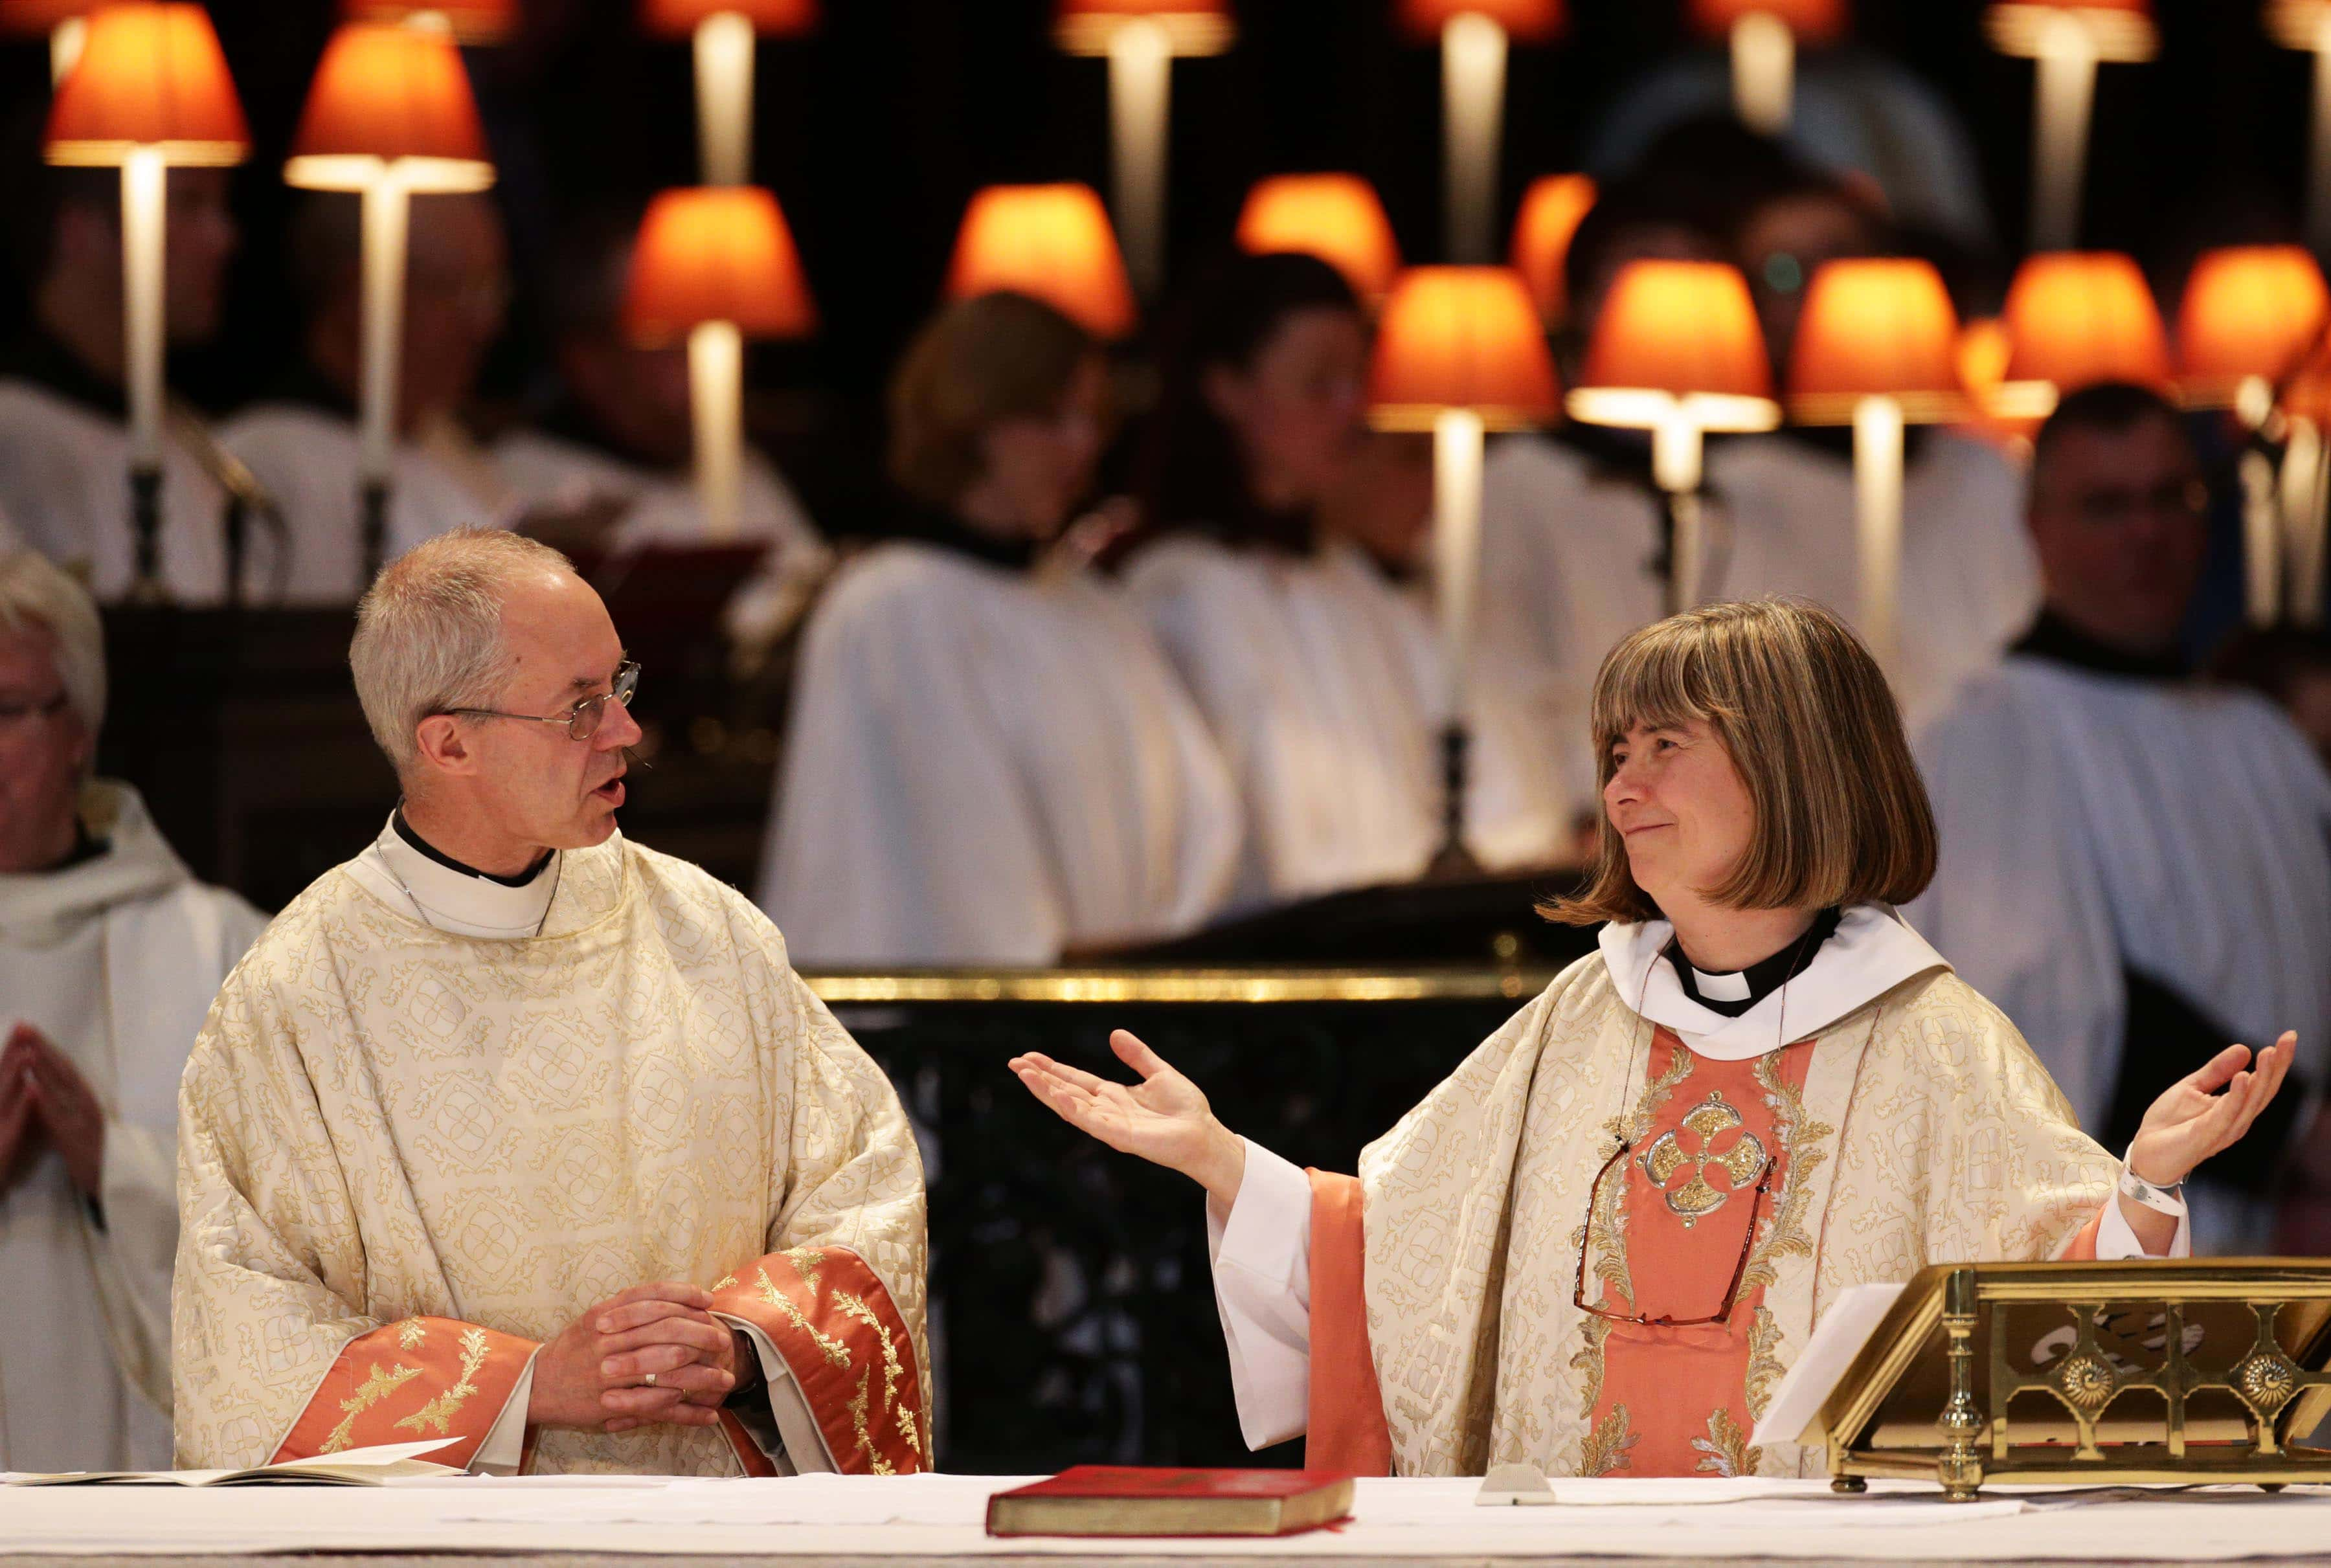 First Openly Gay Episcopal Bishop, Whose Election Caused A Stir, To Divorce